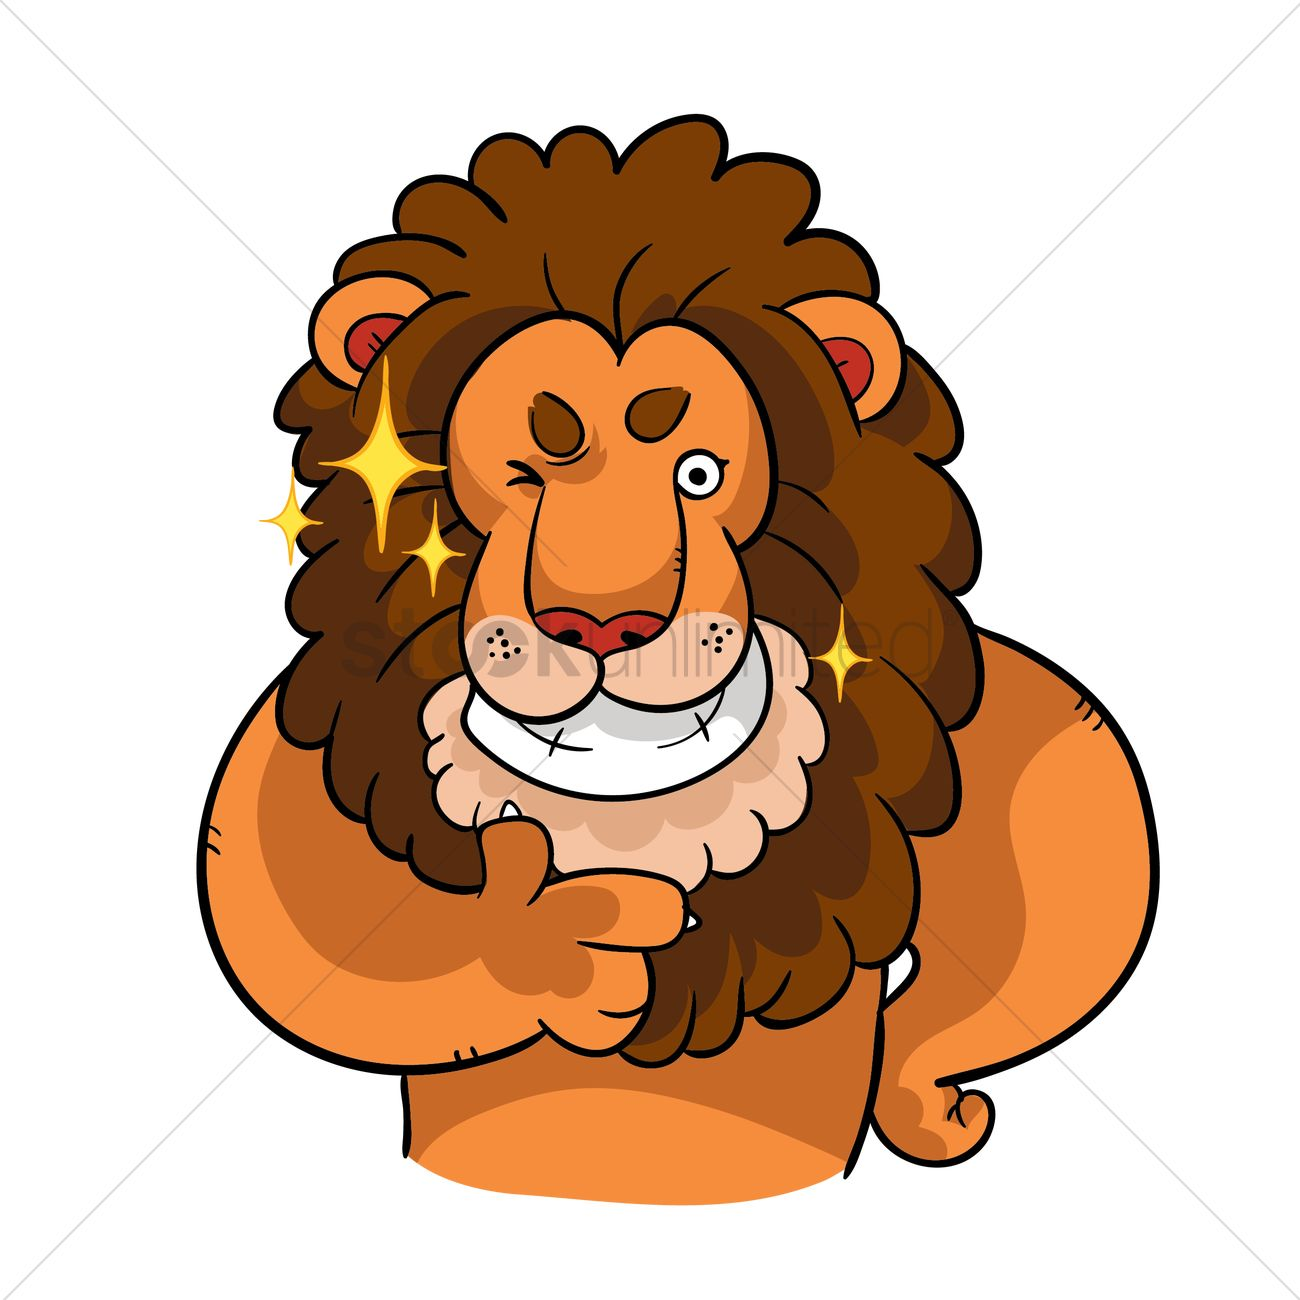 Cartoon lion with thumbs up gesture Vector Image.